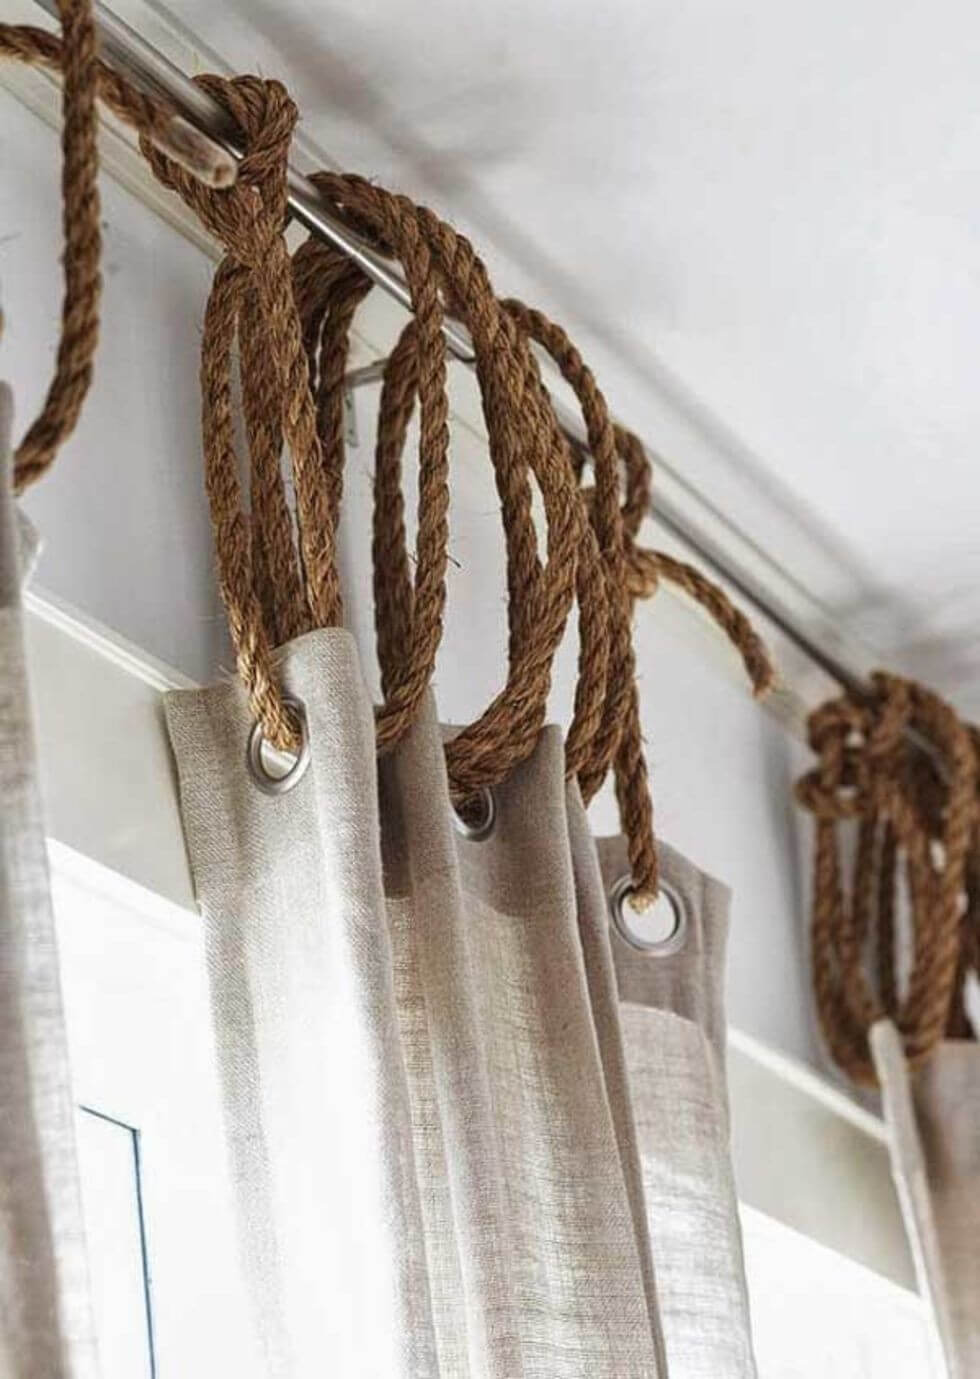 6. Unique Ideas for Hanging Curtains with Rope by simphome.com